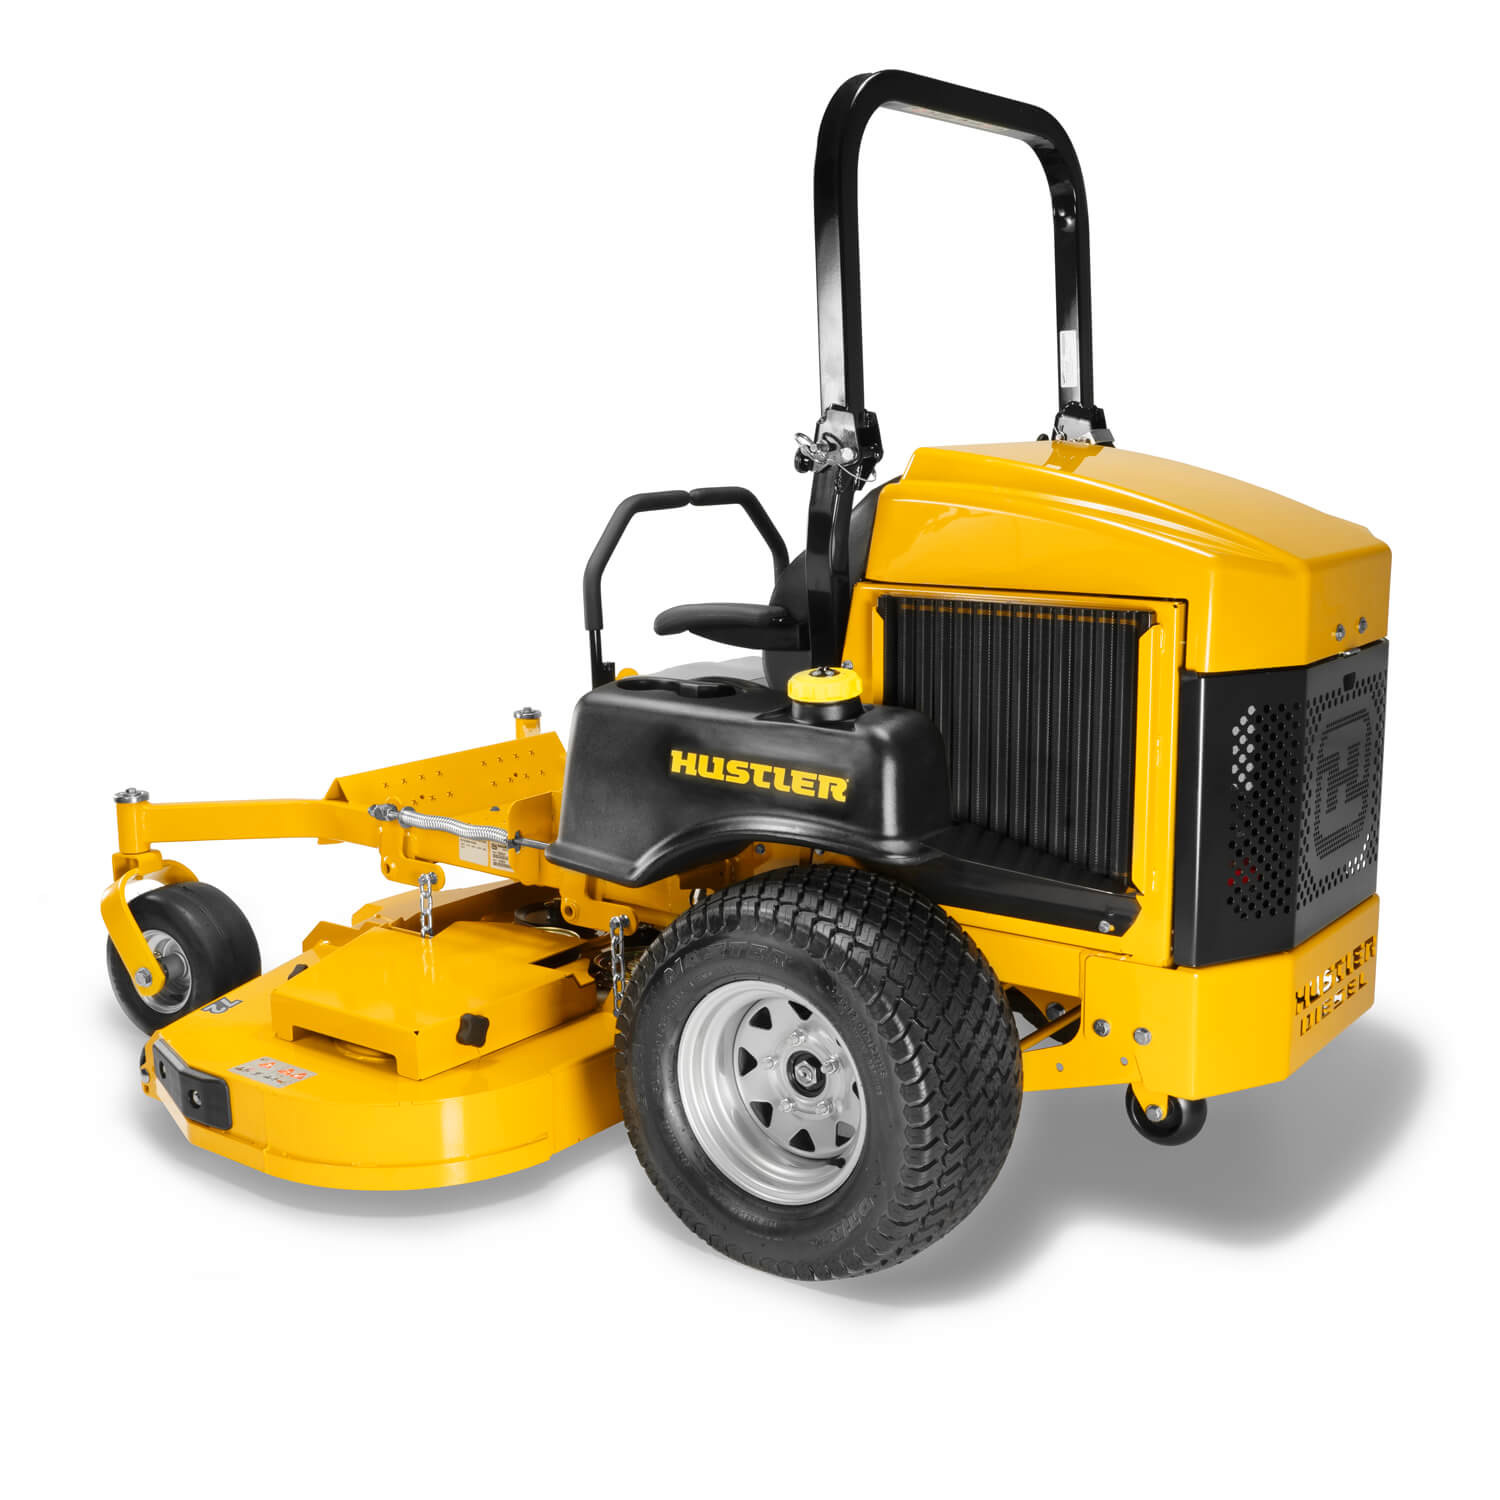 Image of the rear three quarters of a yellow mower